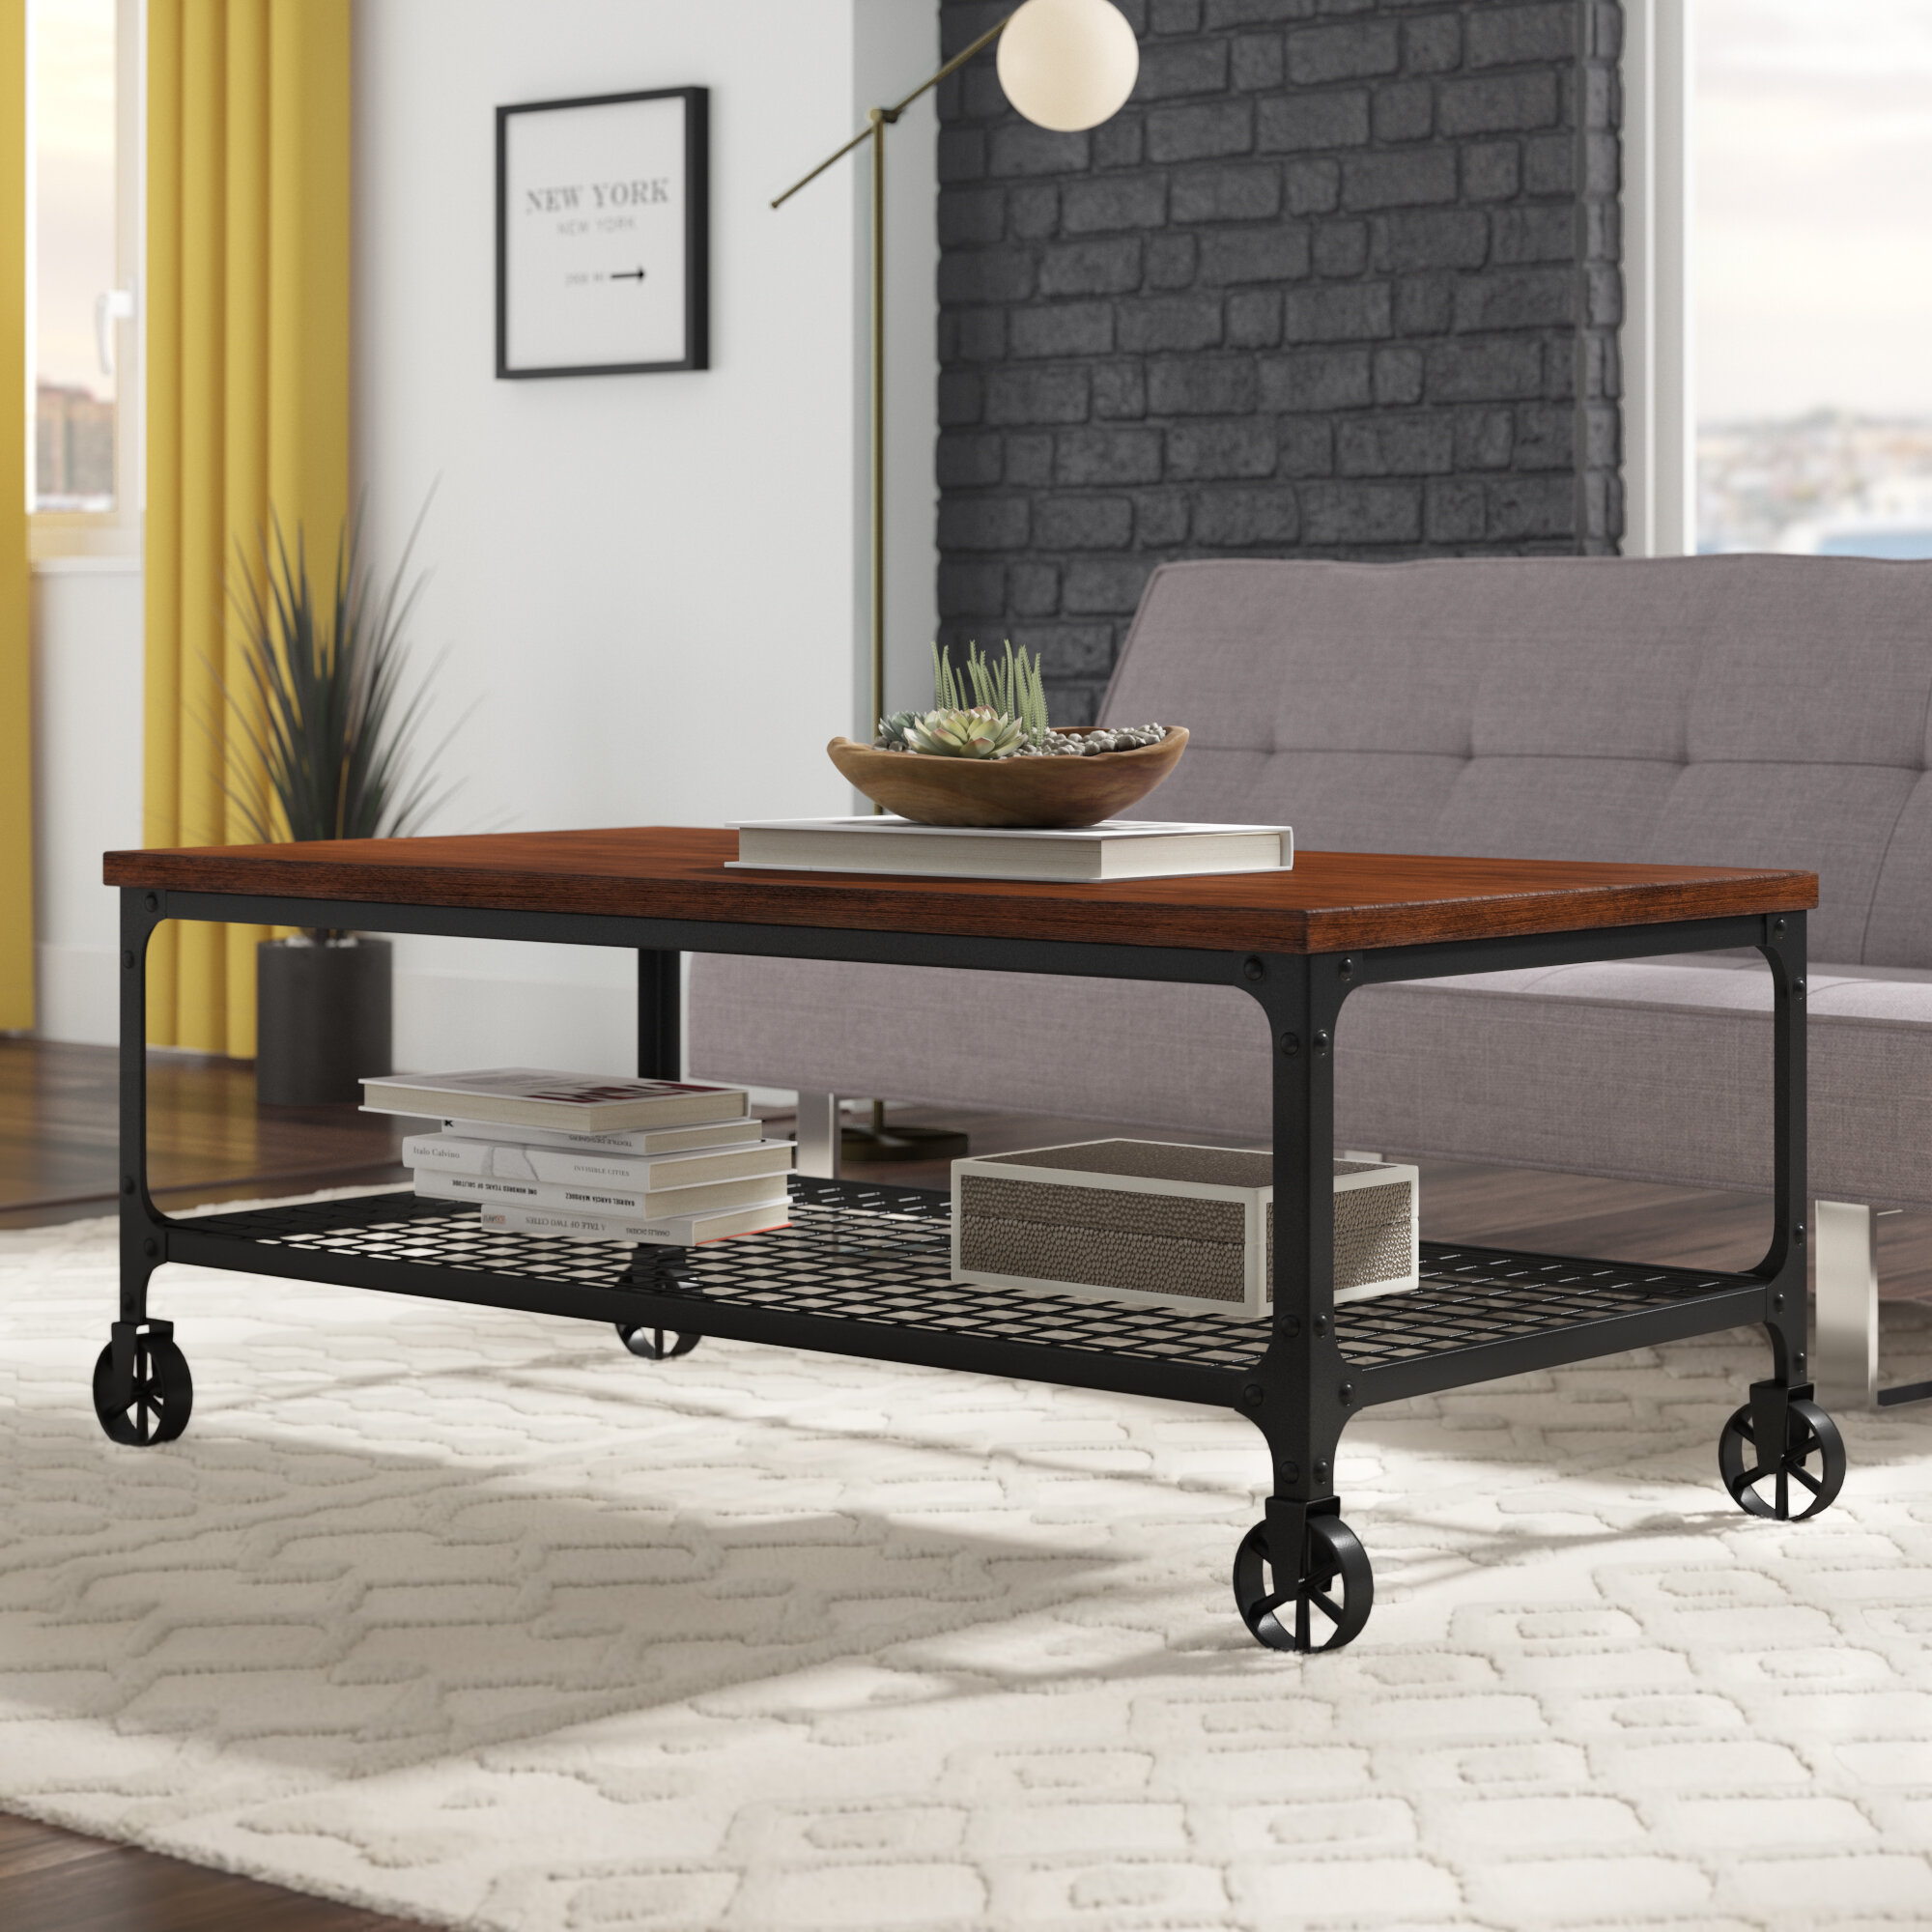 Merveilleux Alpert Industrial Coffee Table With Tray Top